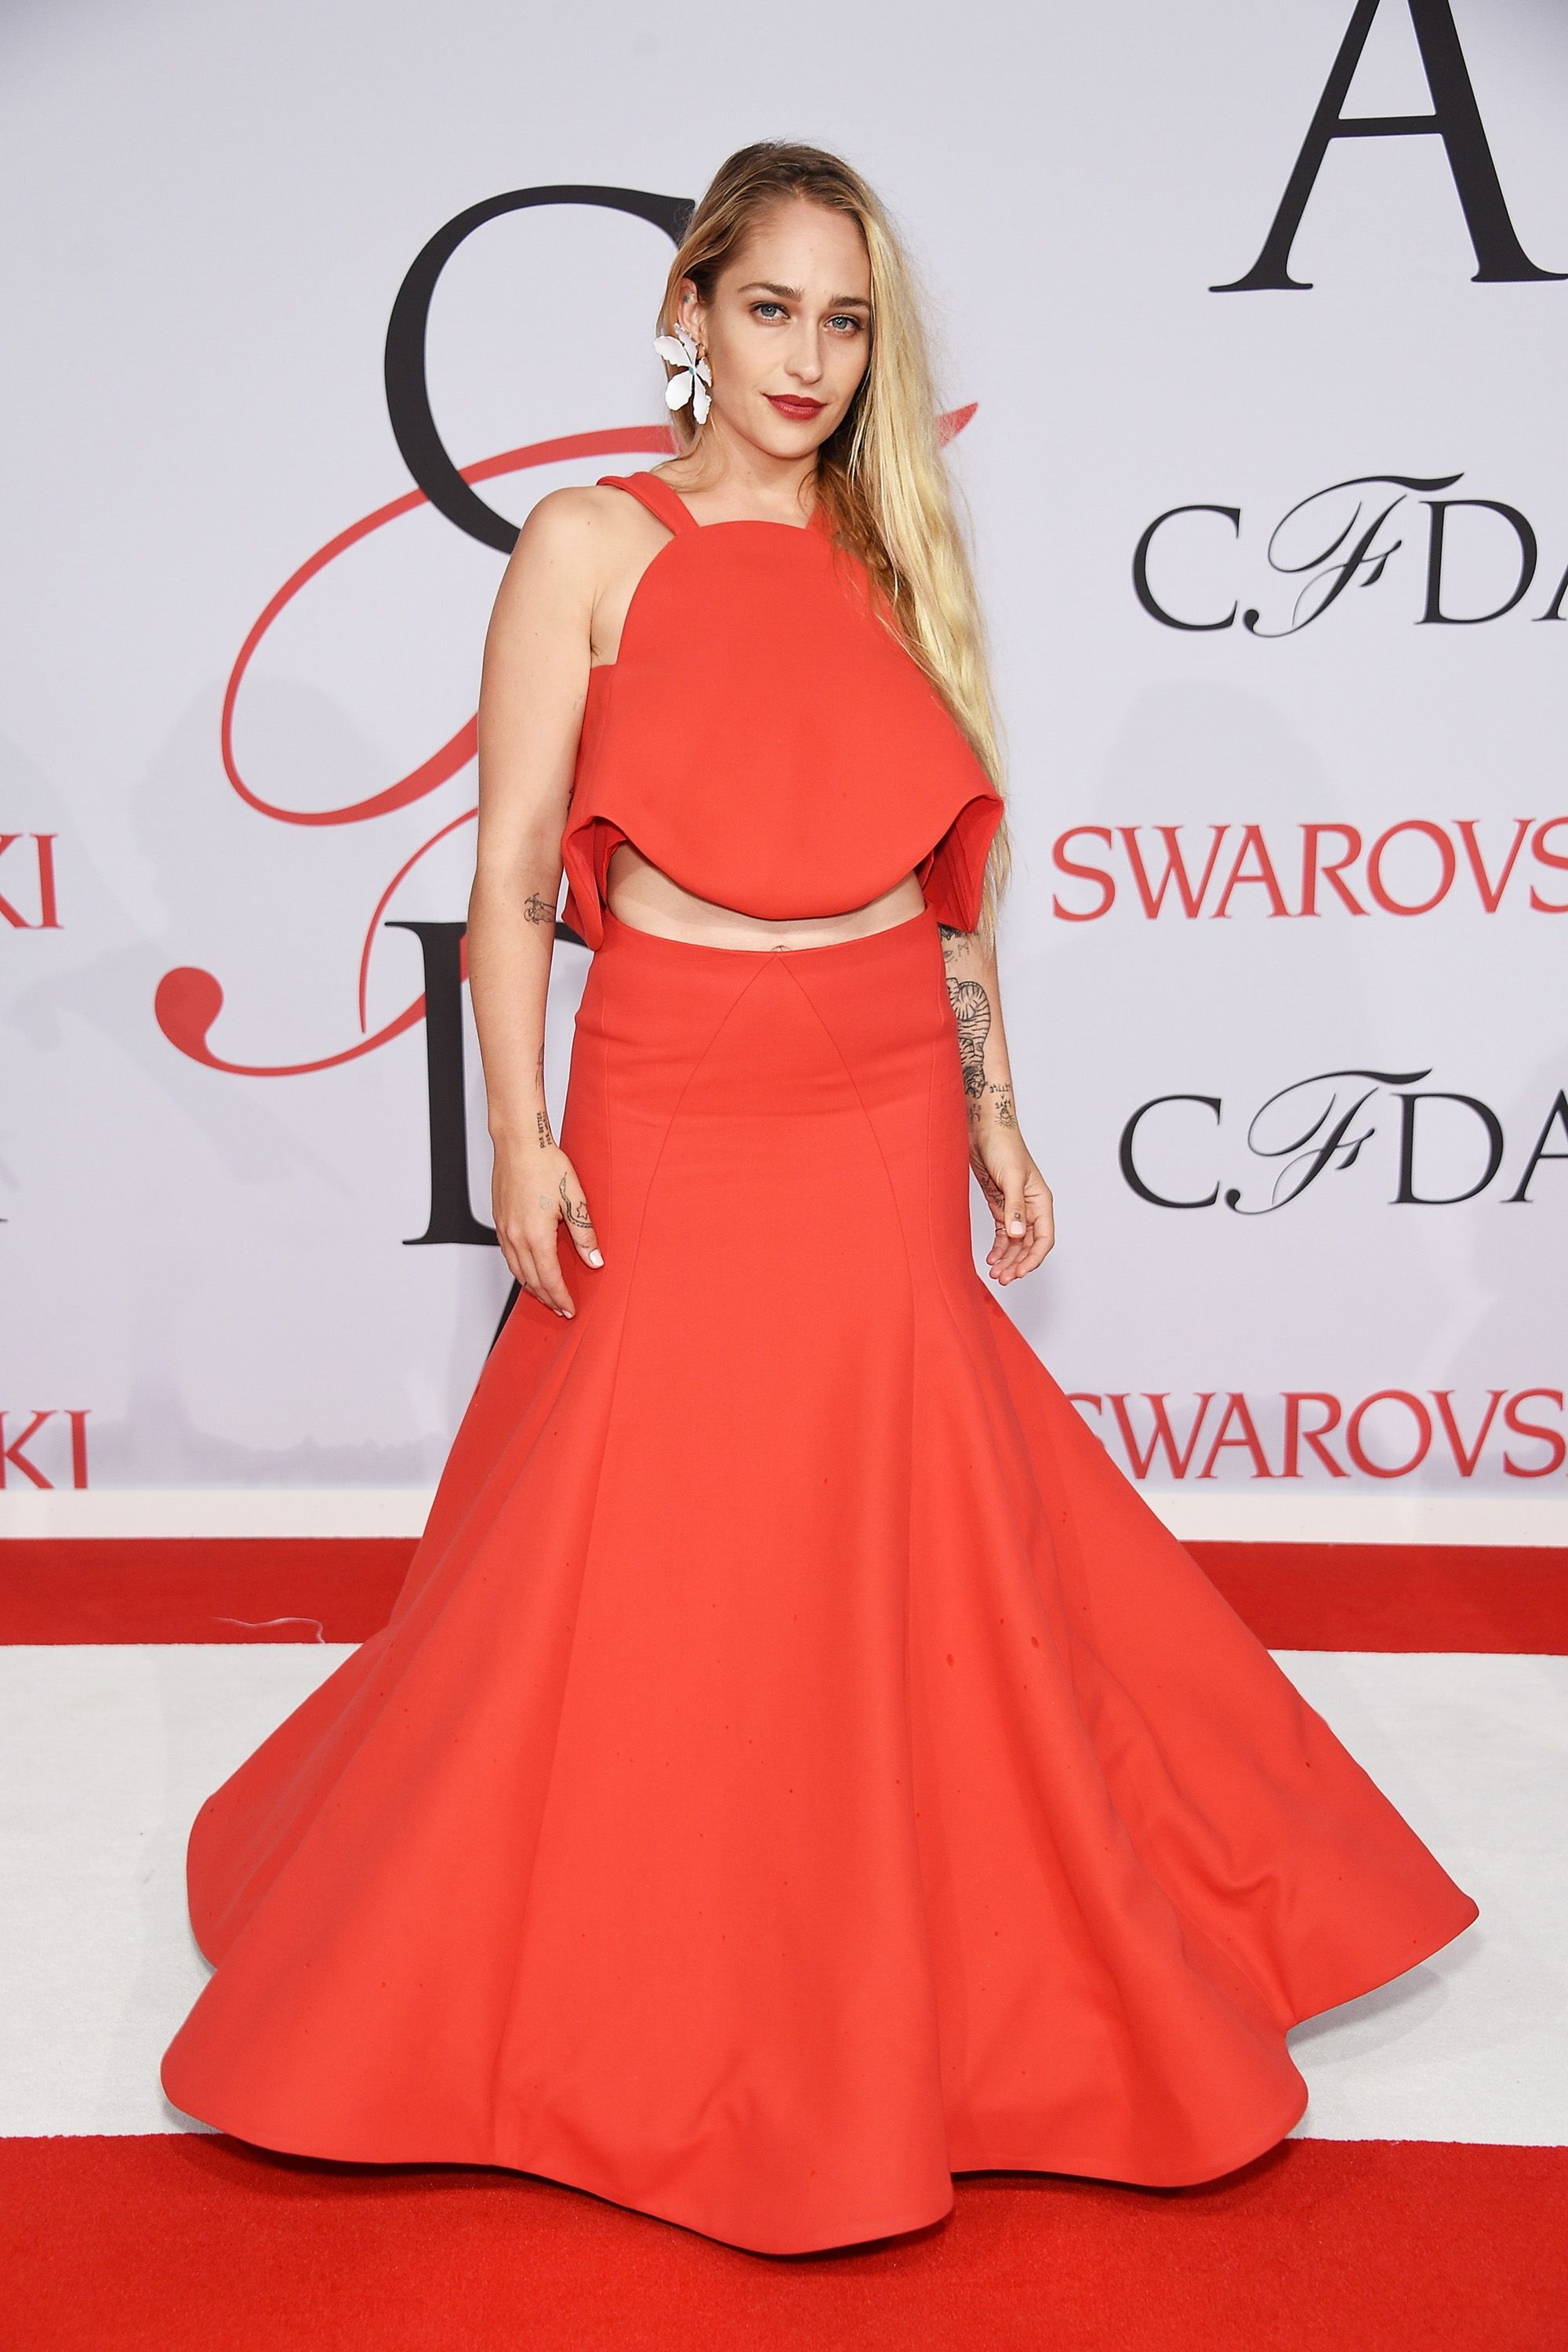 CFDA Awards 2015: See all the red carpet pics pics